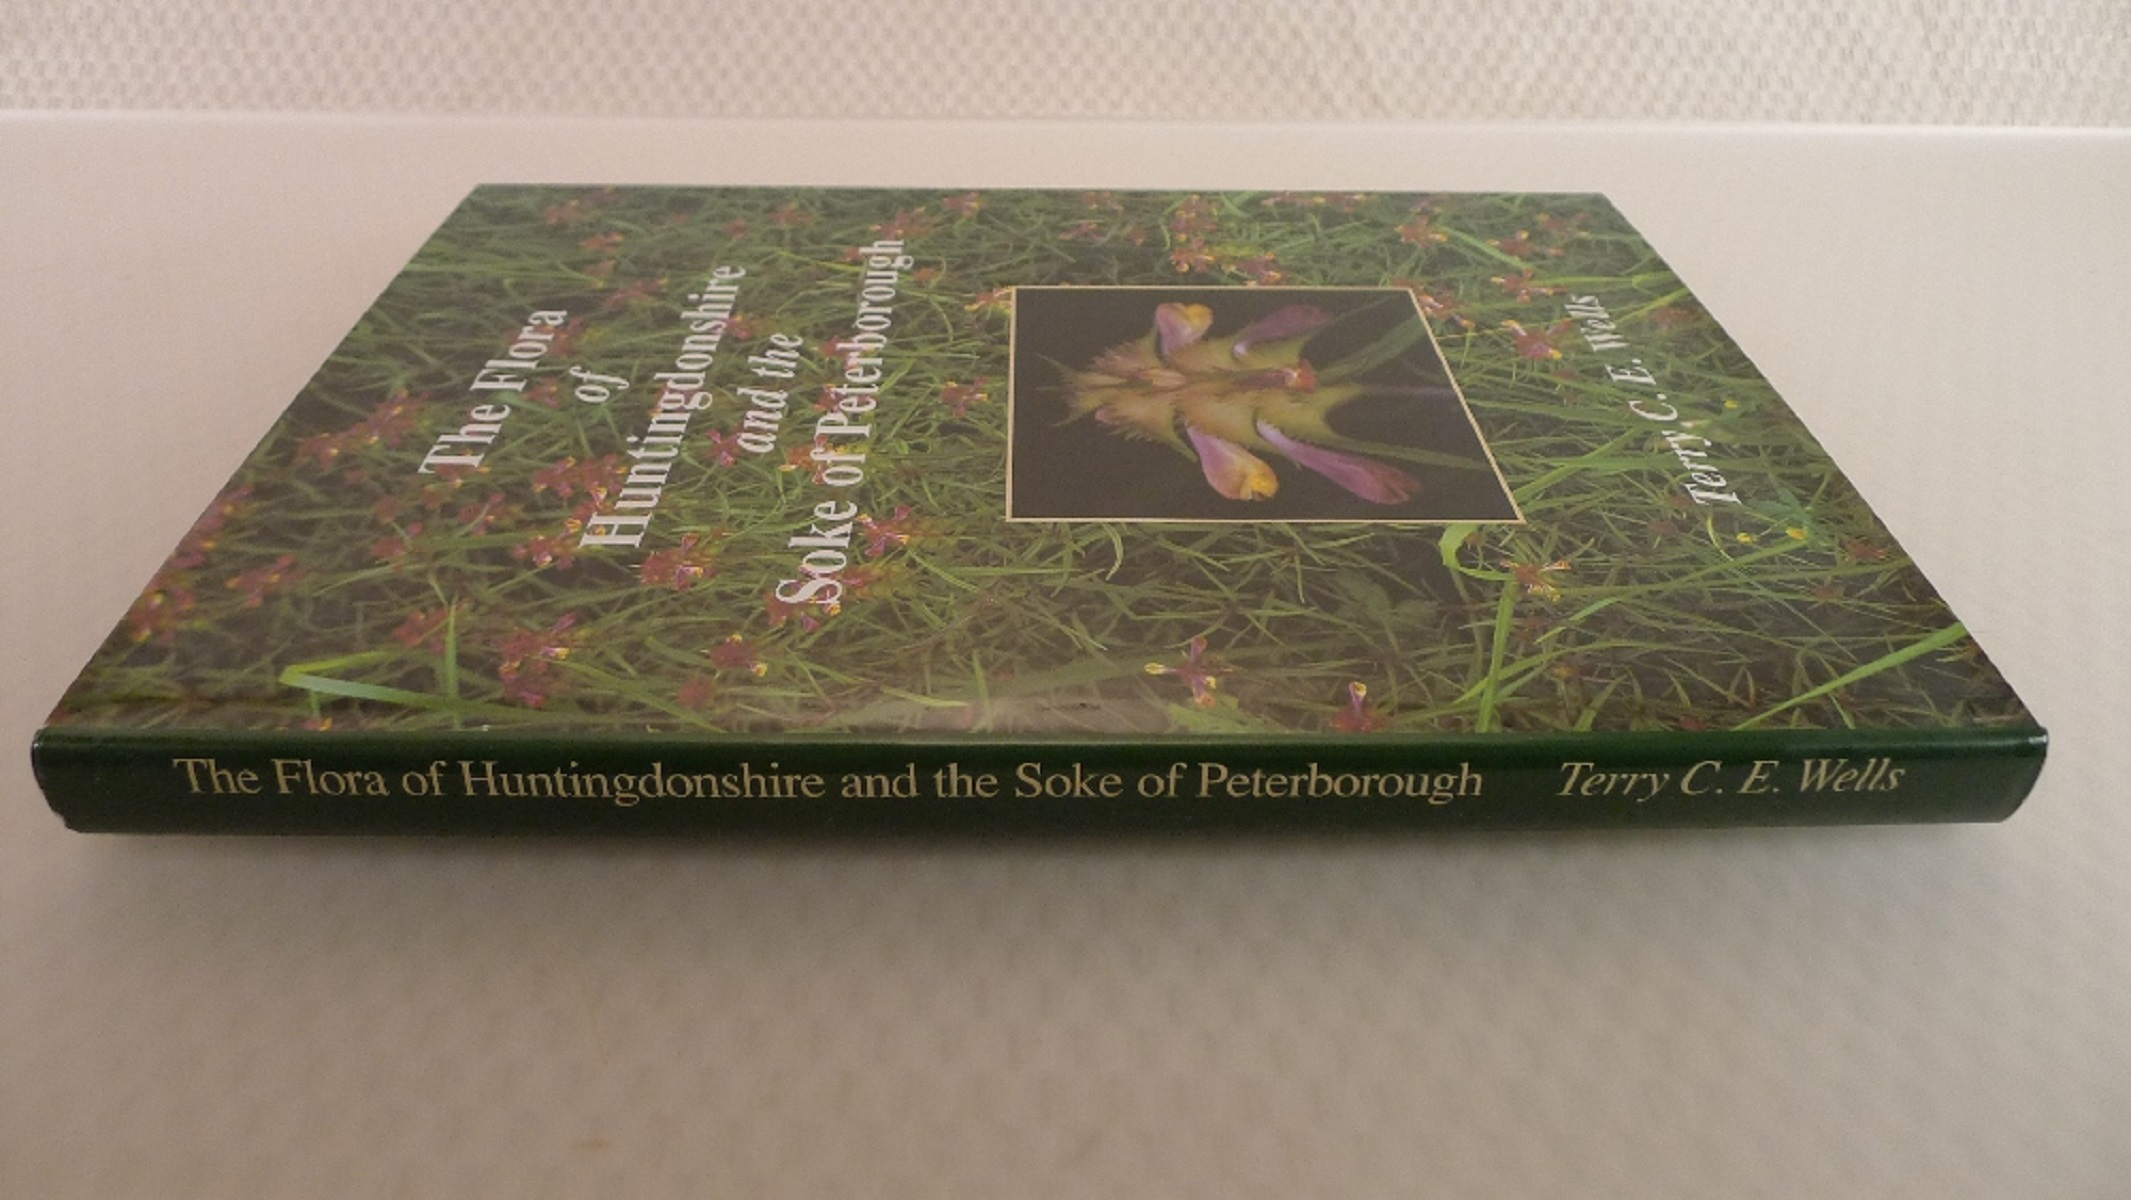 The Flora of Huntingdonshire and the Soke of Peterborough by Terry C E Wells published by - Image 2 of 6